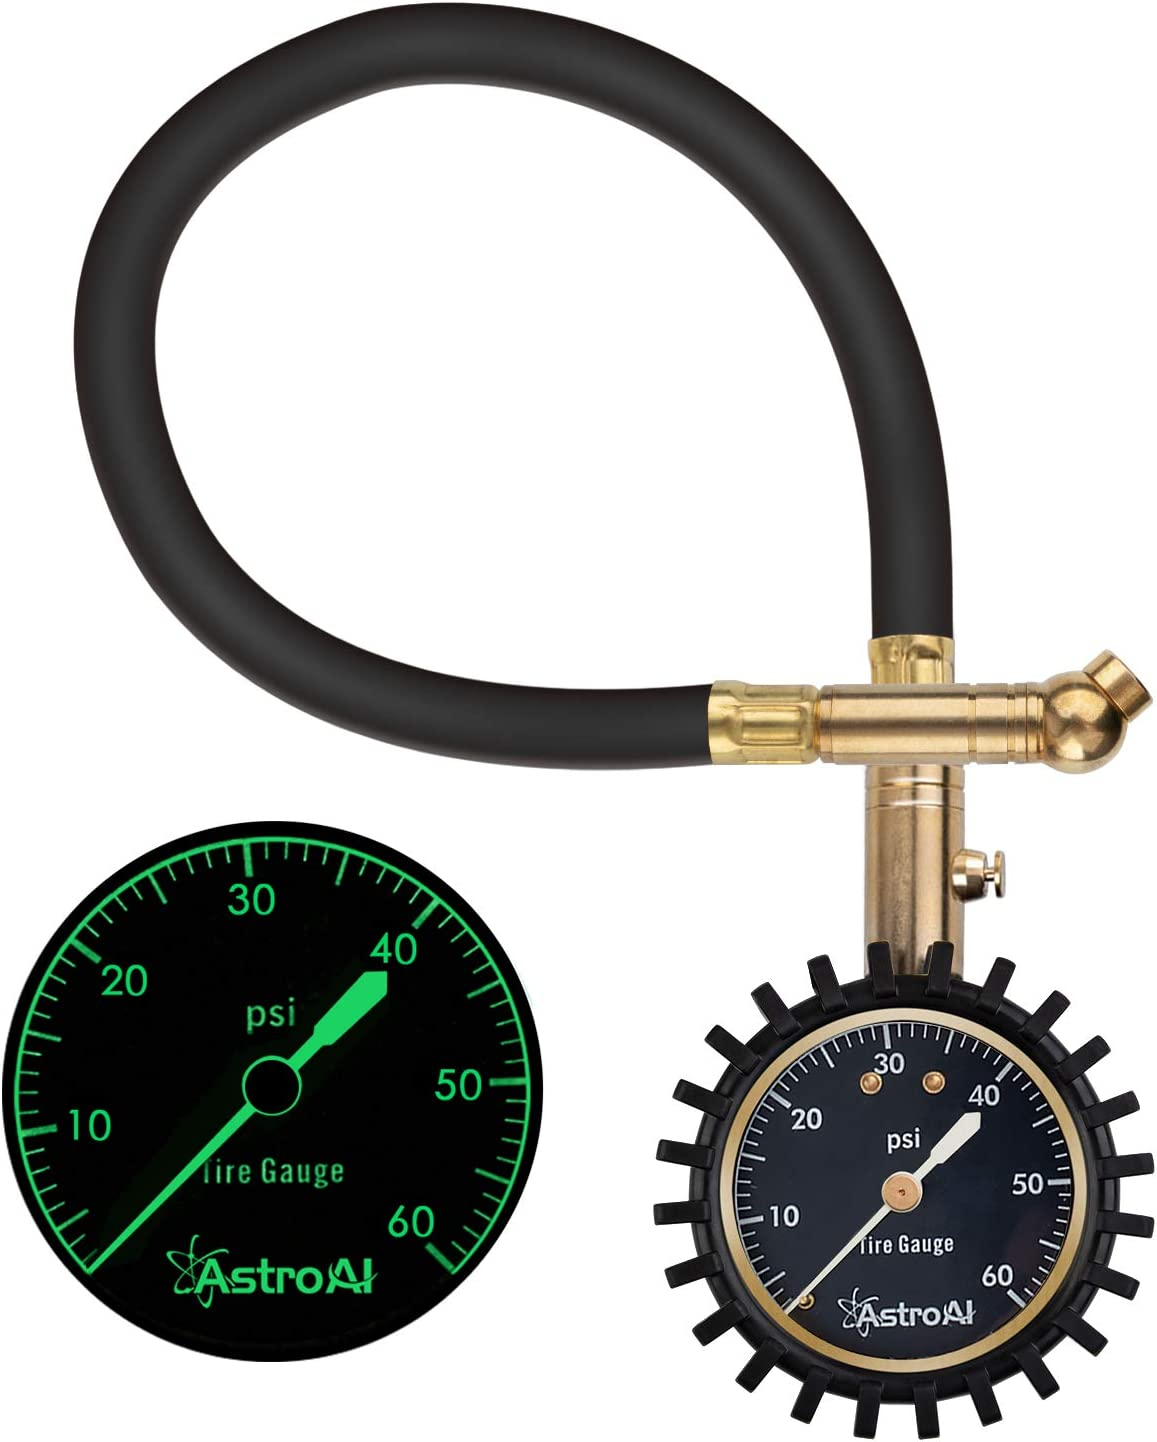 Certified ANSI B40.1 Accurate with Improved Needle and Chuck 0-60 PSI AstroAI Tire Pressure Gauge Expert